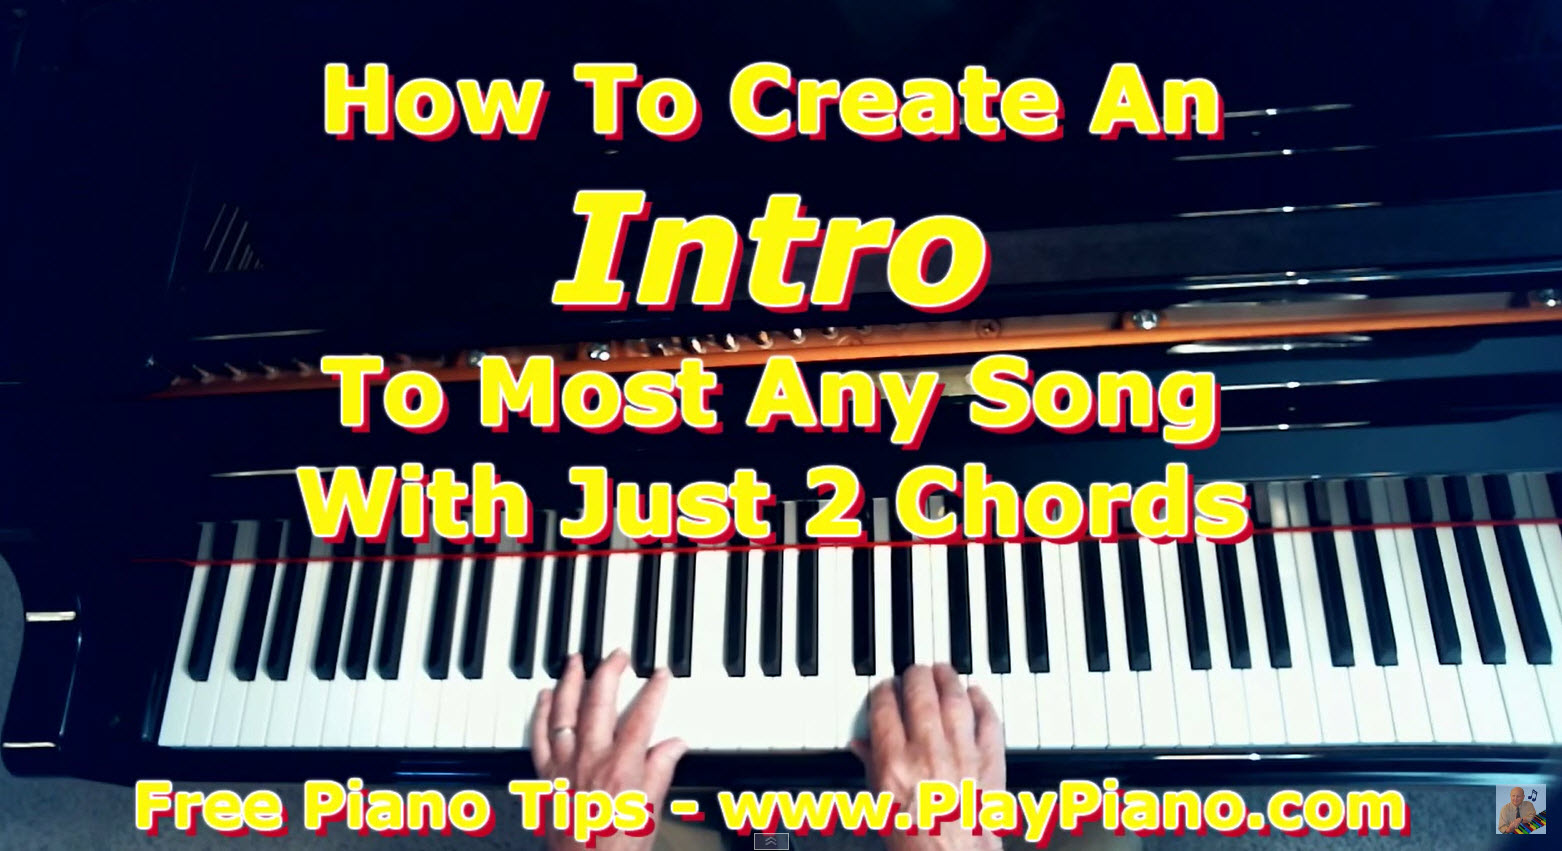 Create a piano intro to a song with just 2 chords piano lessons create a piano intro to a song with just 2 chords hexwebz Choice Image